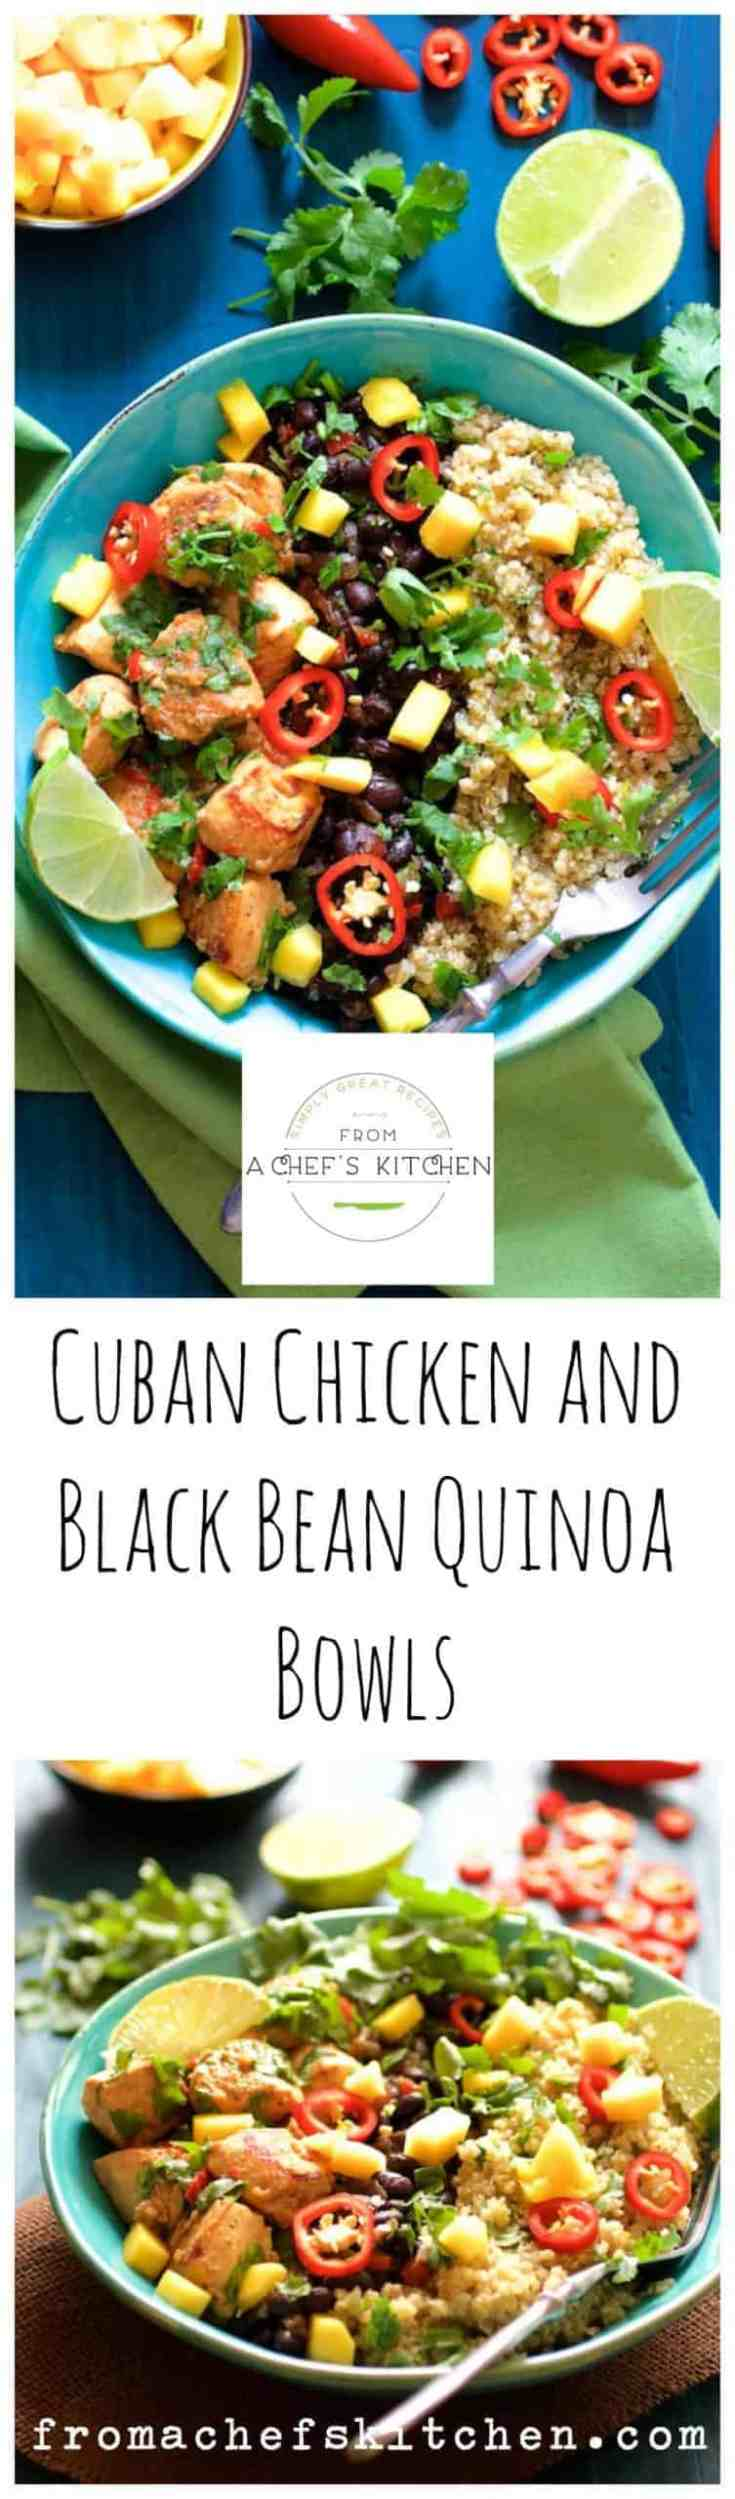 Cuban Chicken and Black Bean - Quinoa Bowls are flavor-packed, healthful, comforting and sure to brighten up your day!  It's like a tropical getaway in a bowl! #chicken #chickenmeals #chickendinners #cubanfood